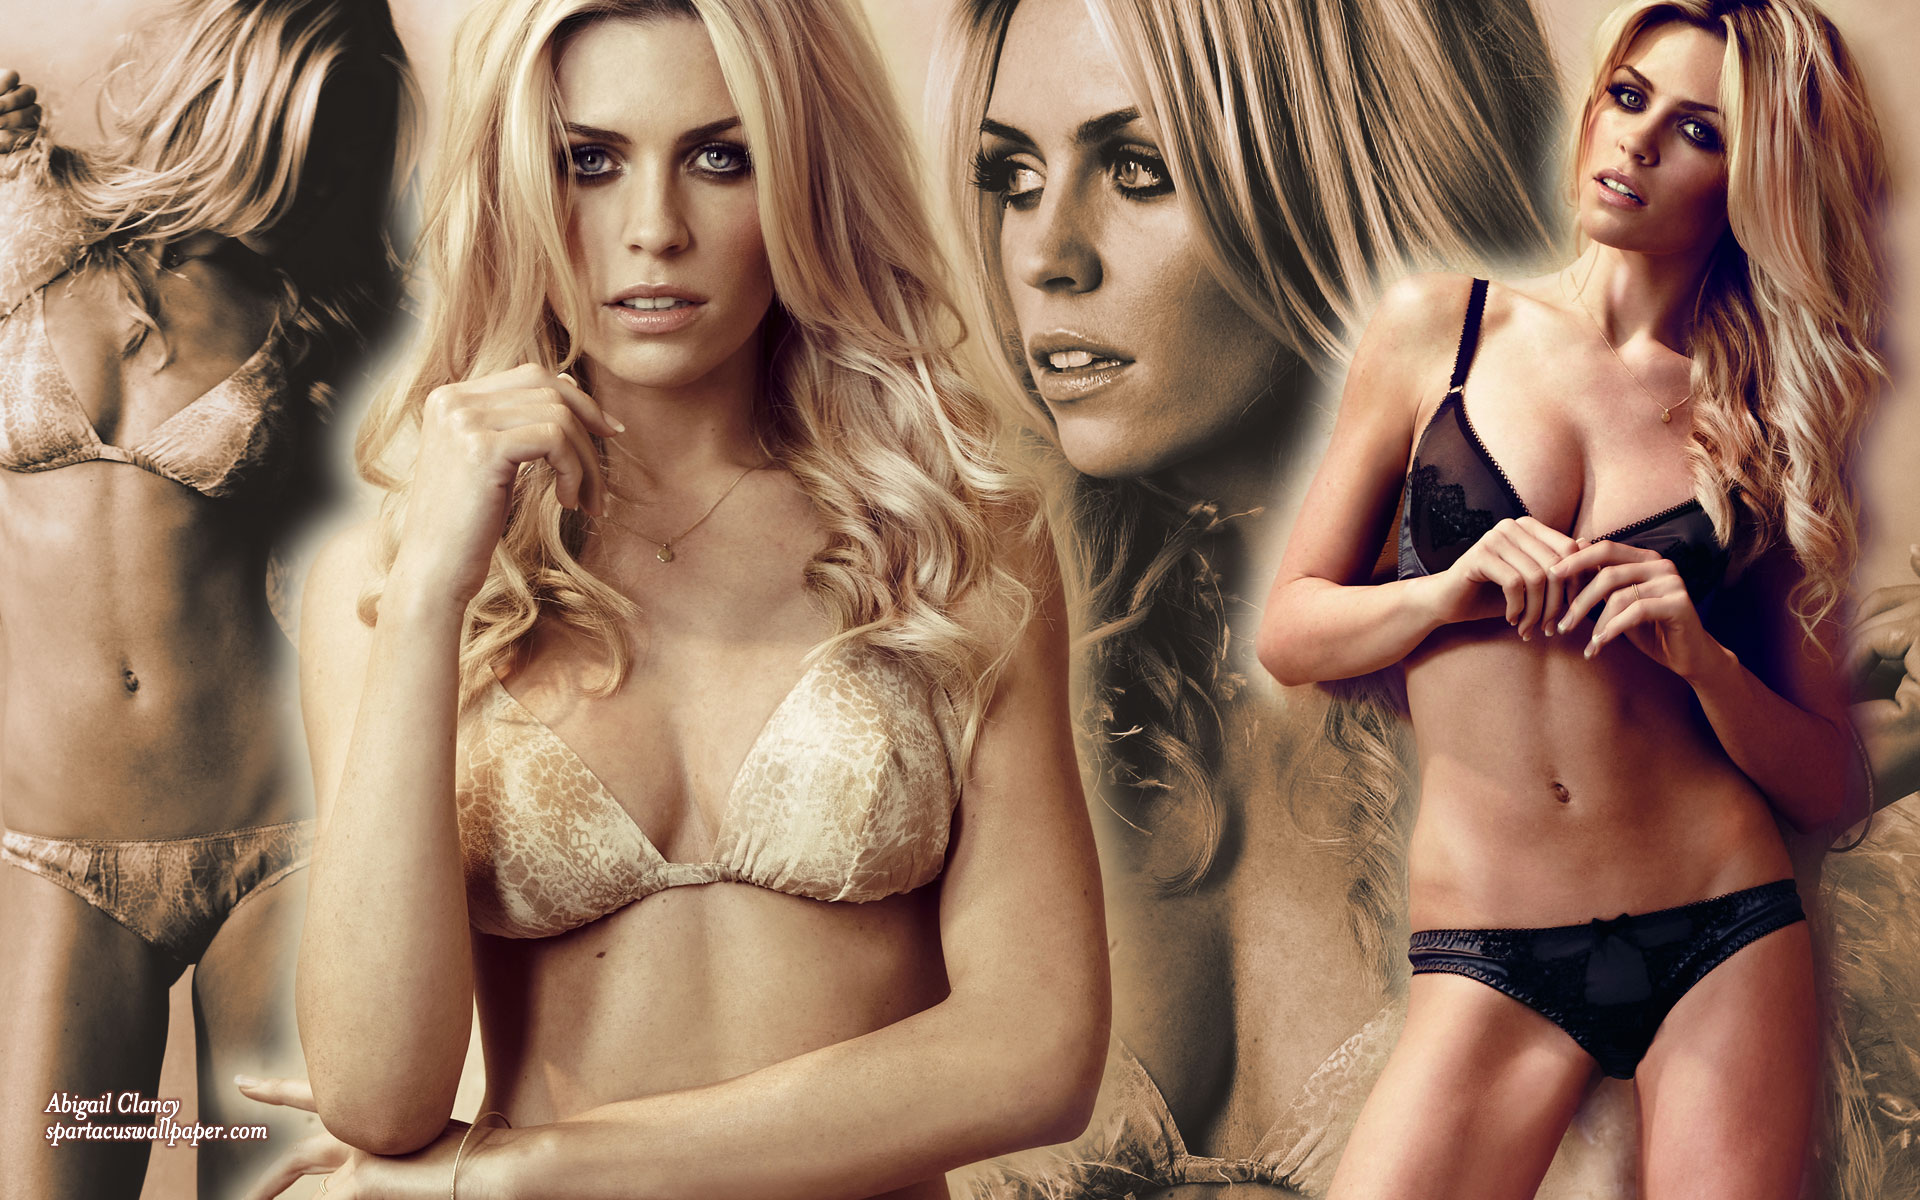 photo collection abigail clancy 1920x1200 wallpapers